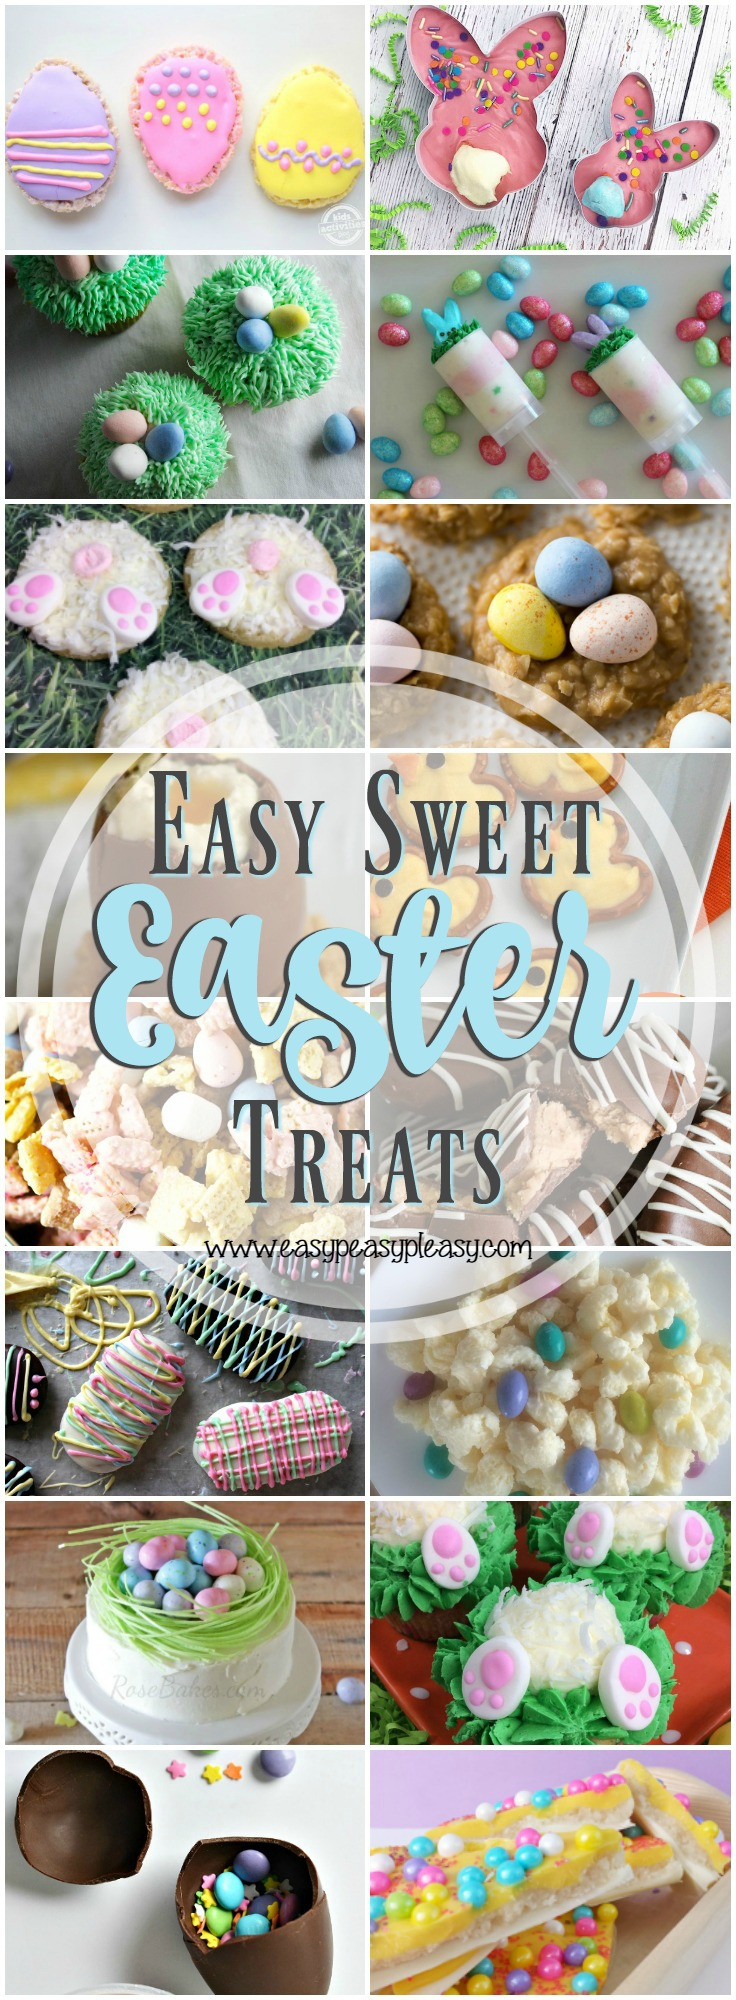 Go ahead...check out these fabulously easy sweet Easter Treats. You're gonna love them!